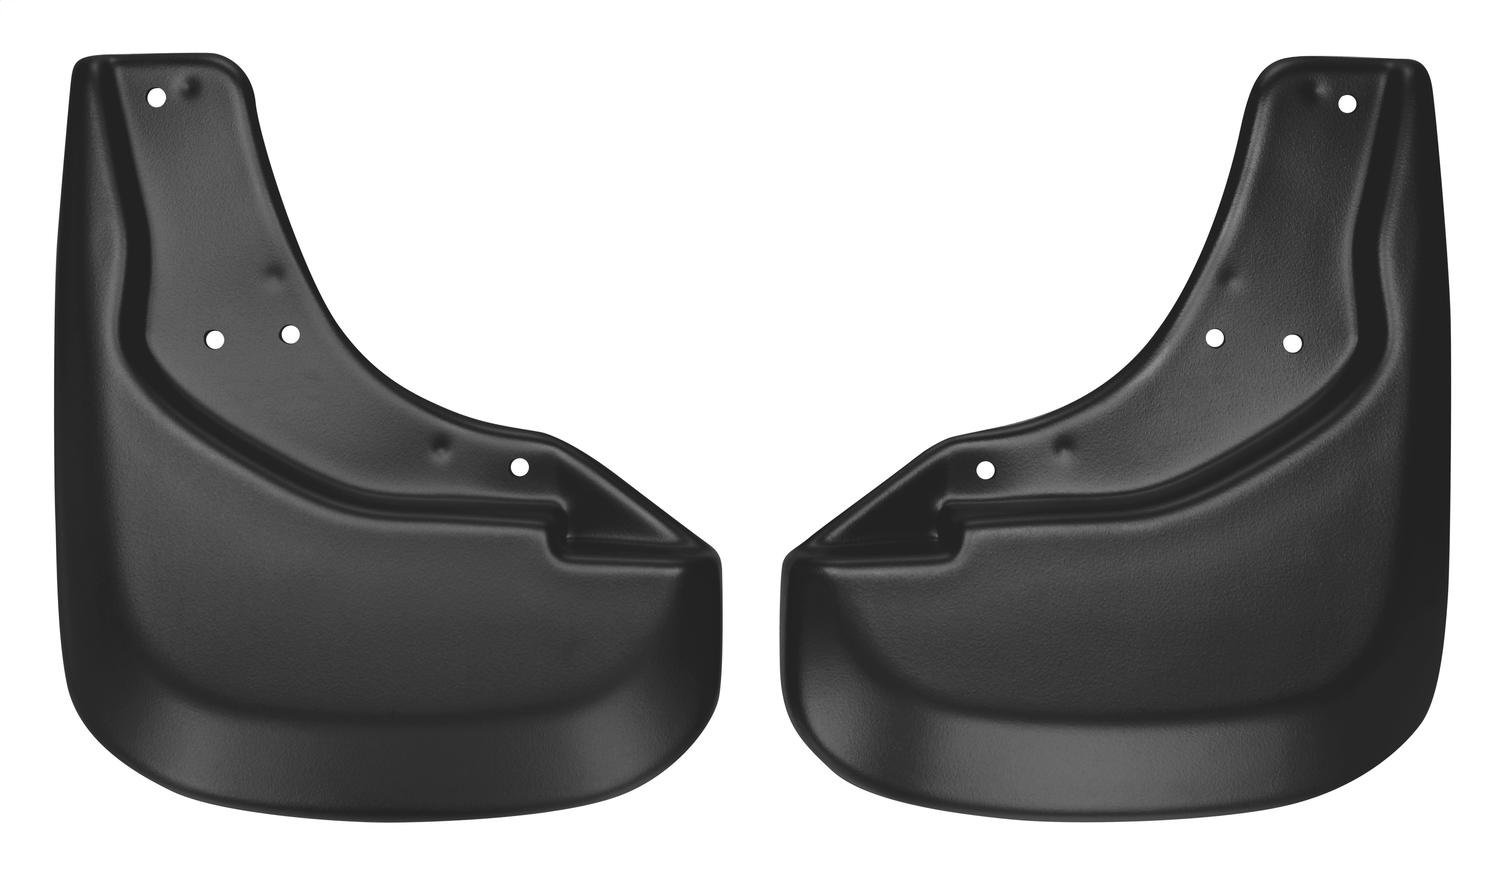 Husky Liners Front Mud Guards Fits 13-18 Escape 58421